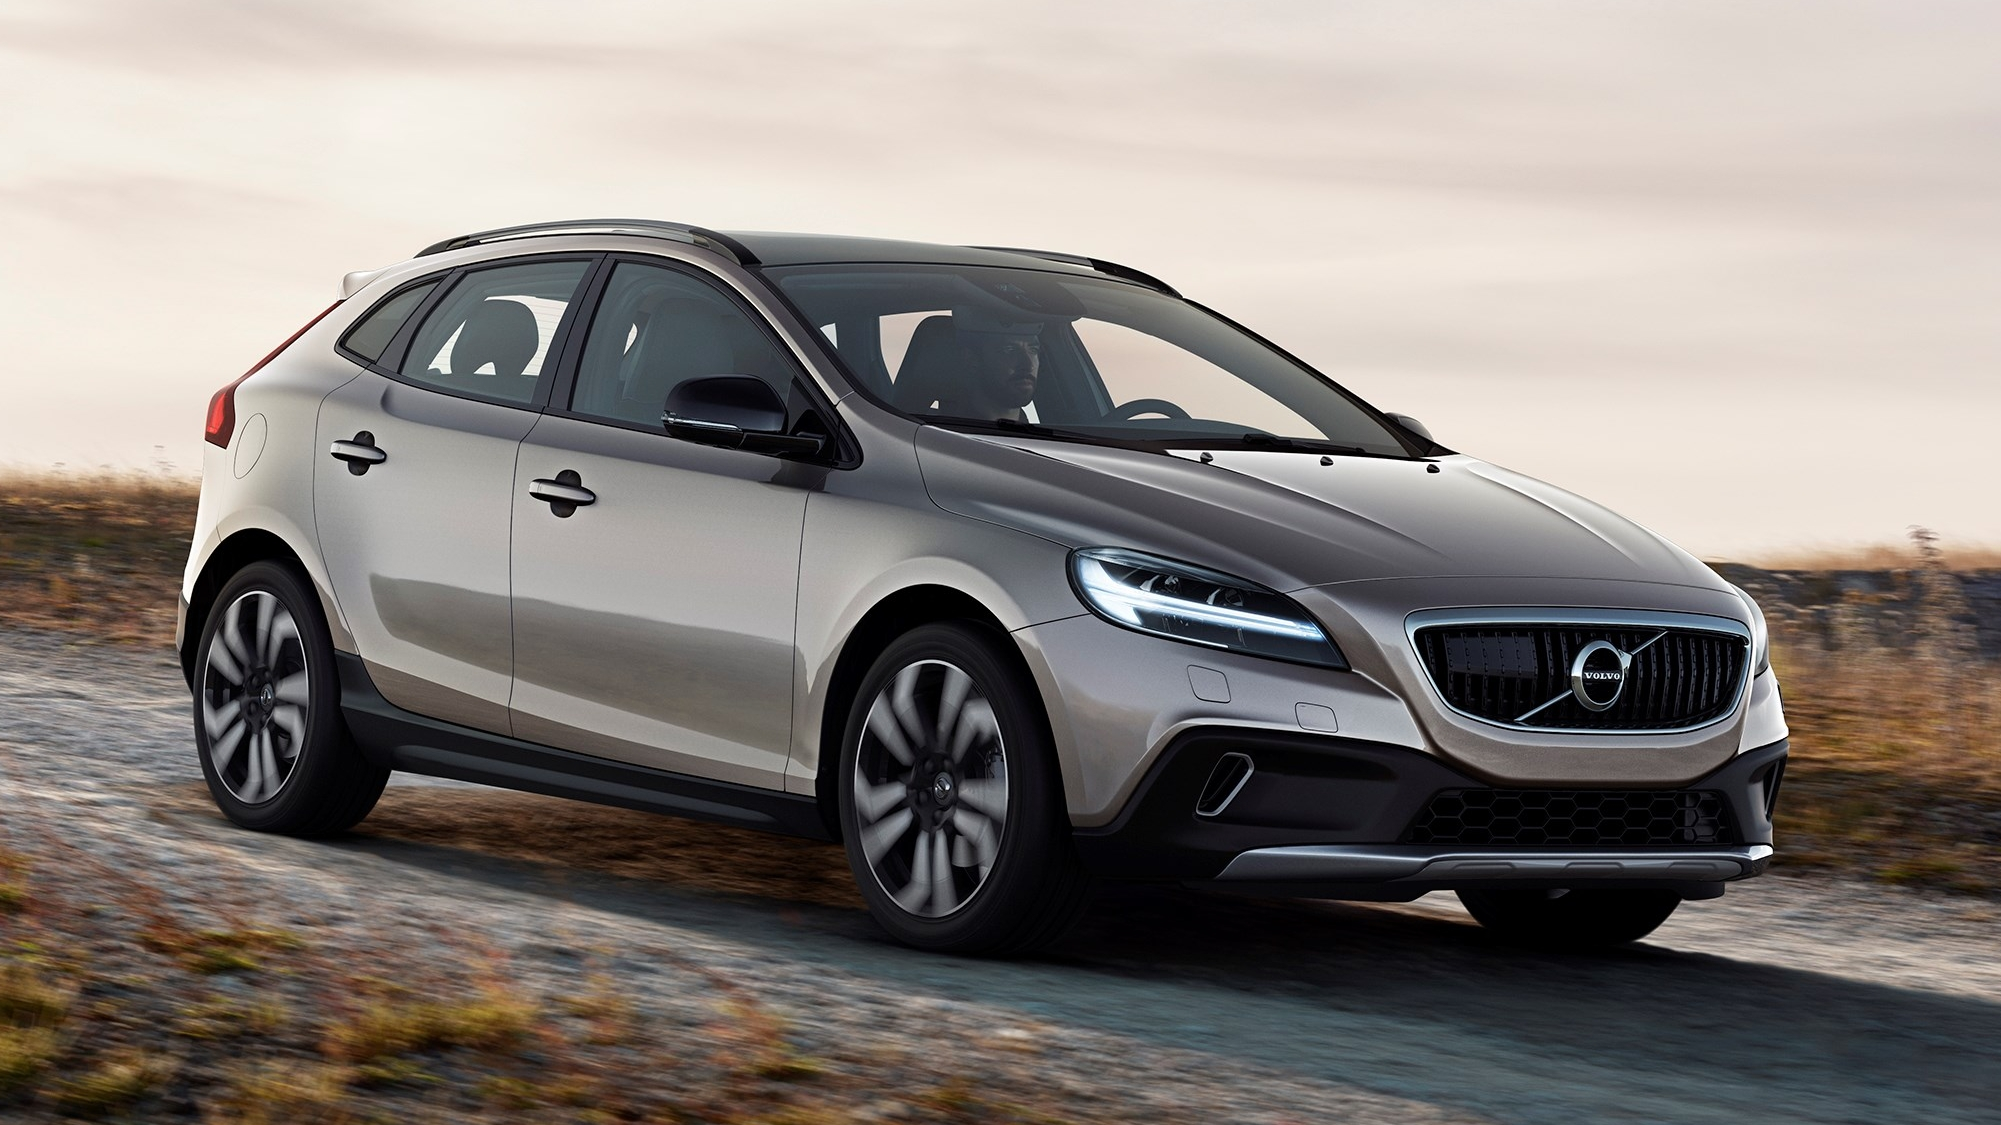 2017 volvo v40 cross country gallery 667211 top speed. Black Bedroom Furniture Sets. Home Design Ideas